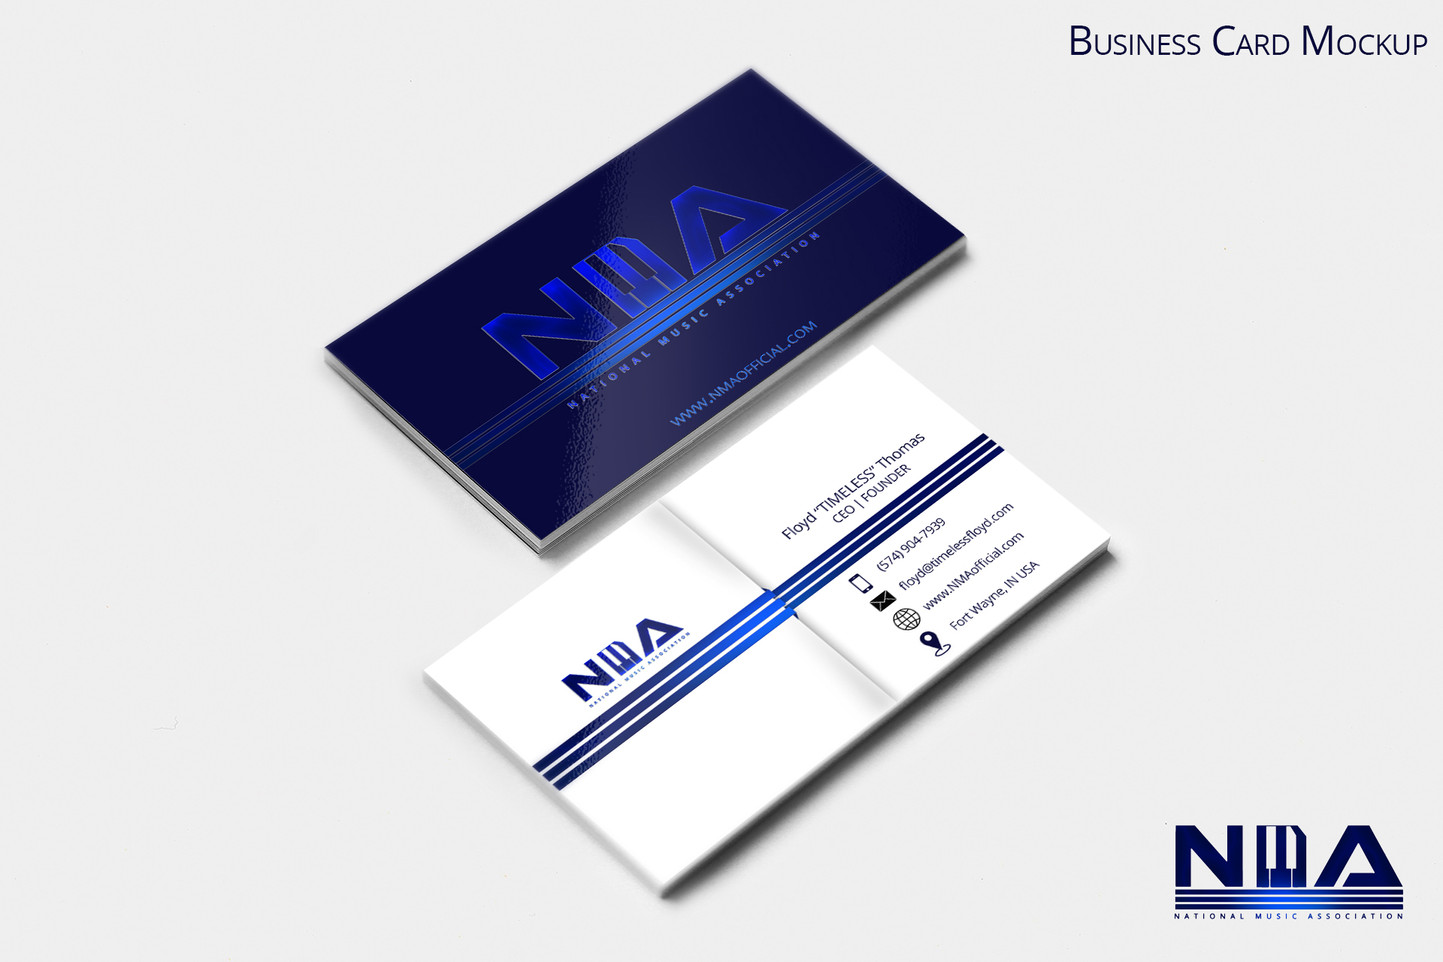 NMA Business card